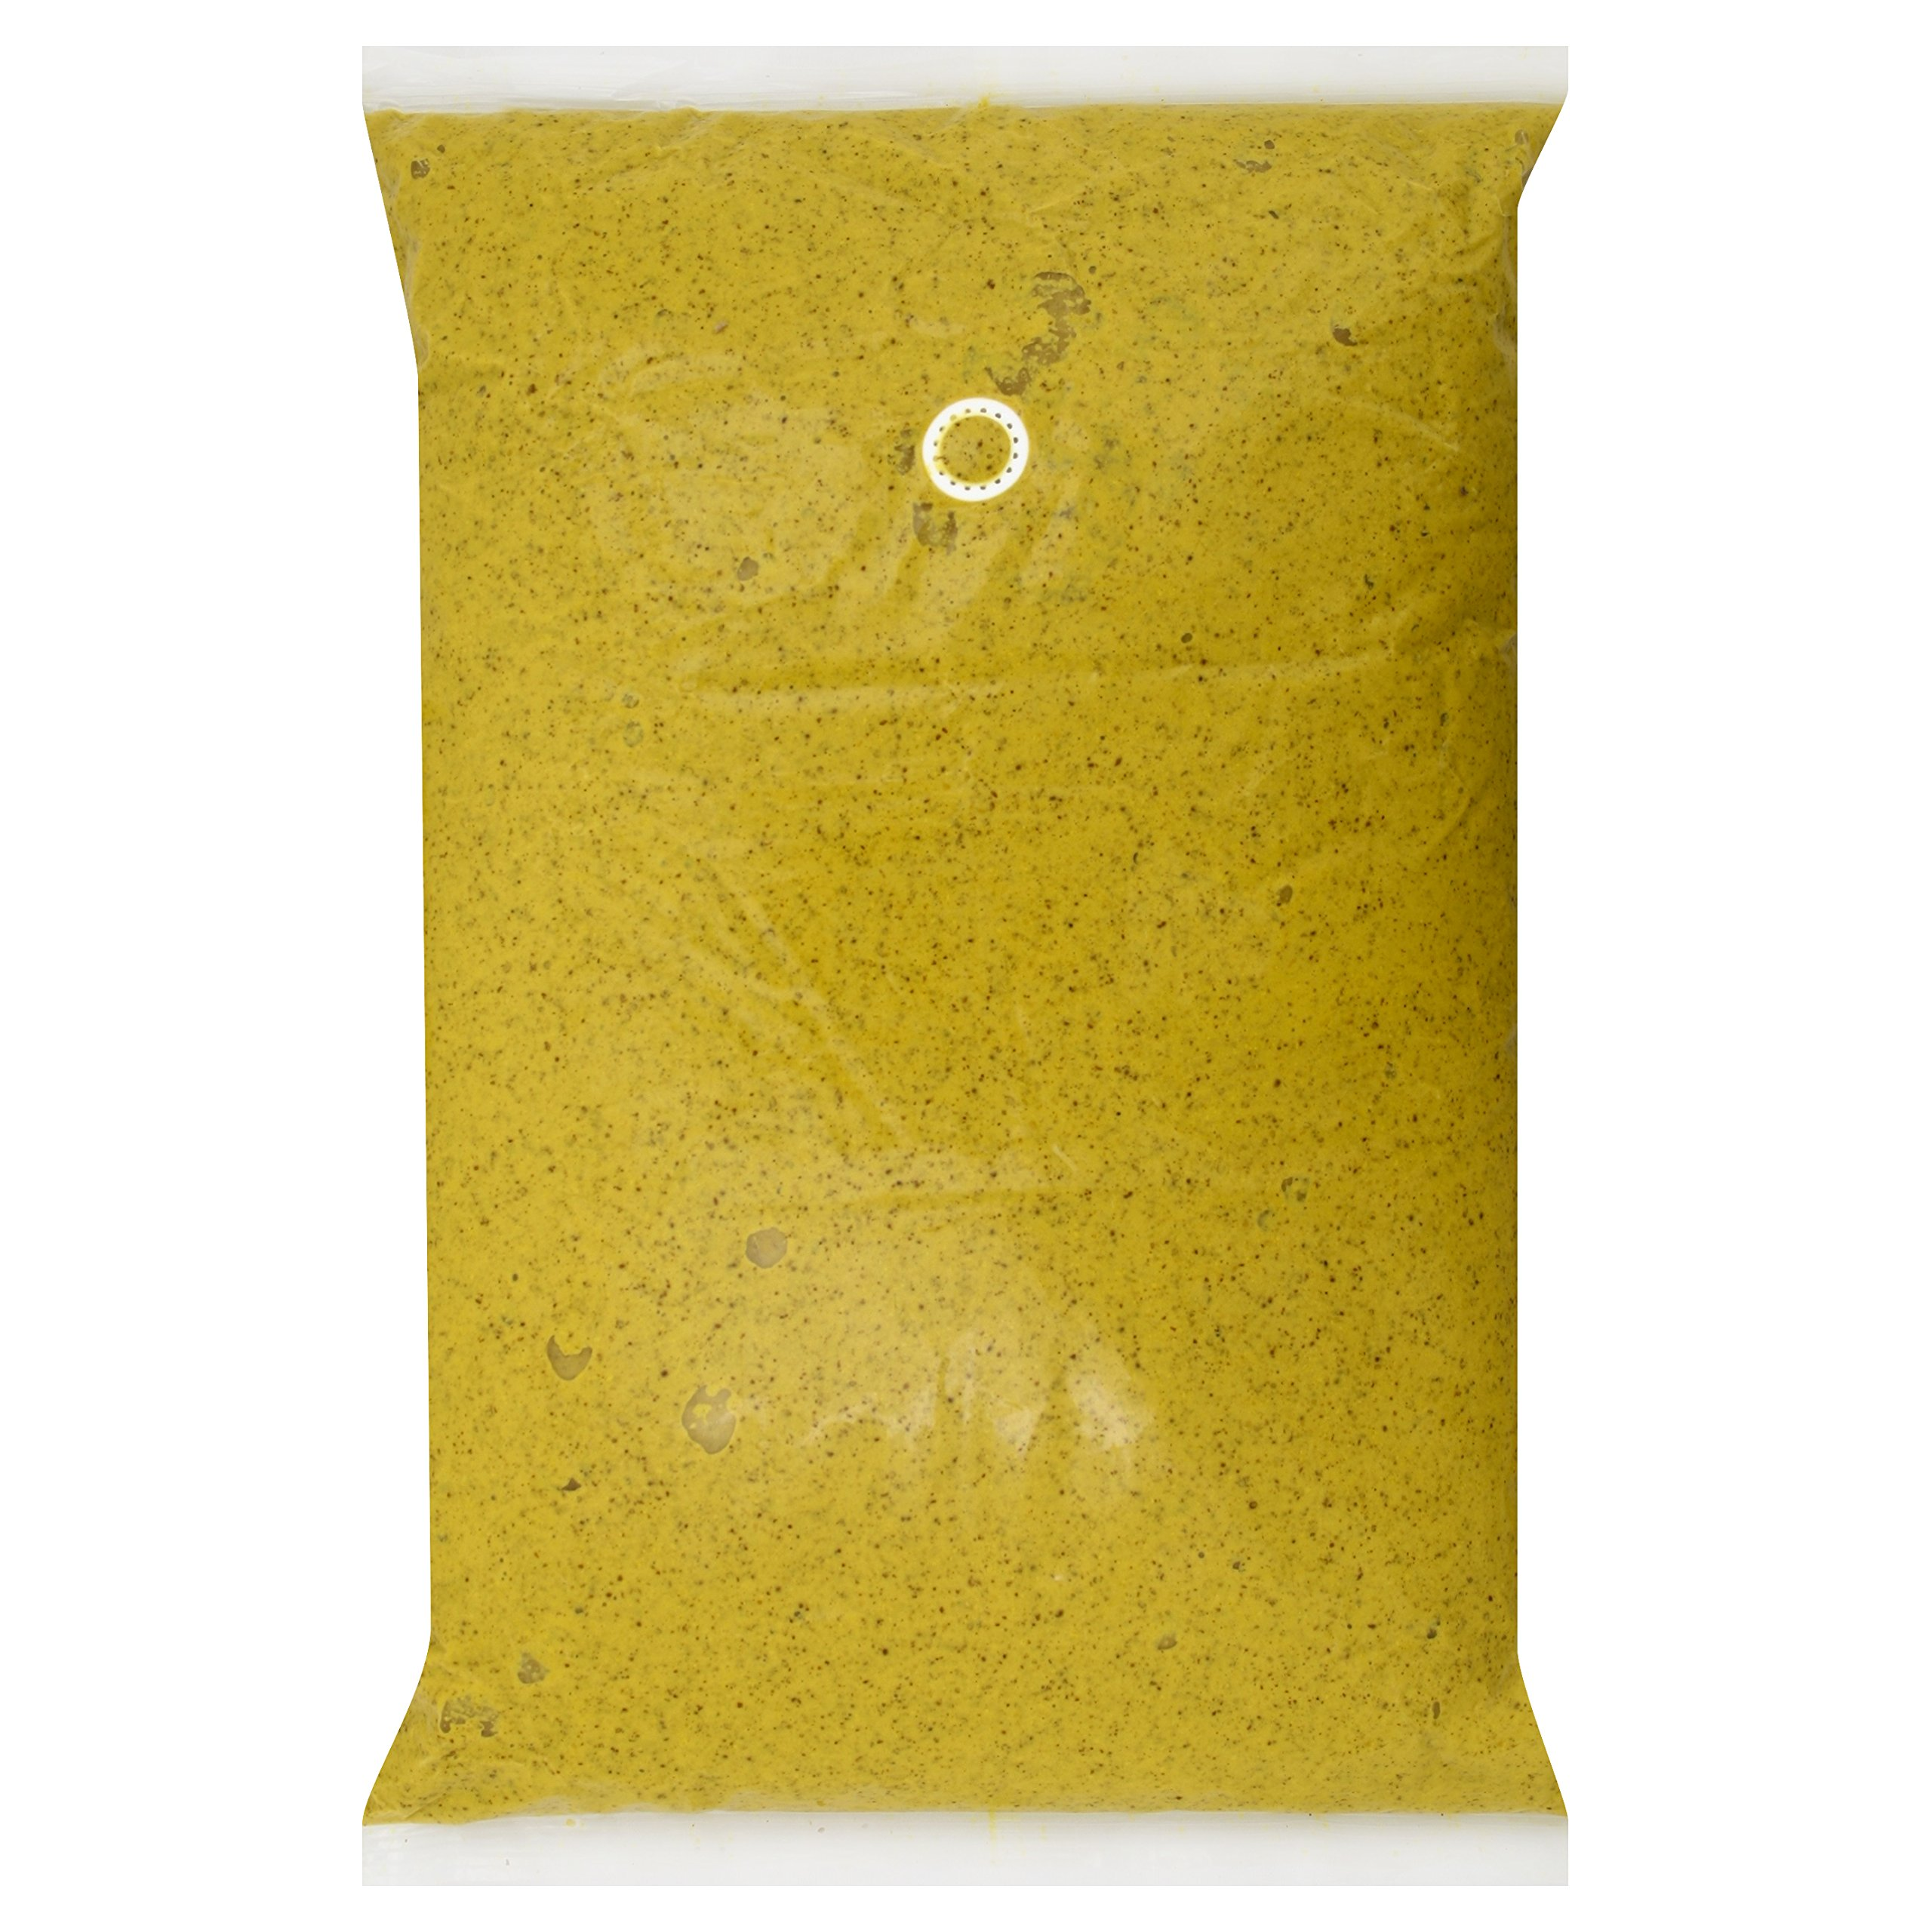 Heinz Deli Mustard Dispenser Pack, 1.5 gal. (Bulk sauces) Pack of 2